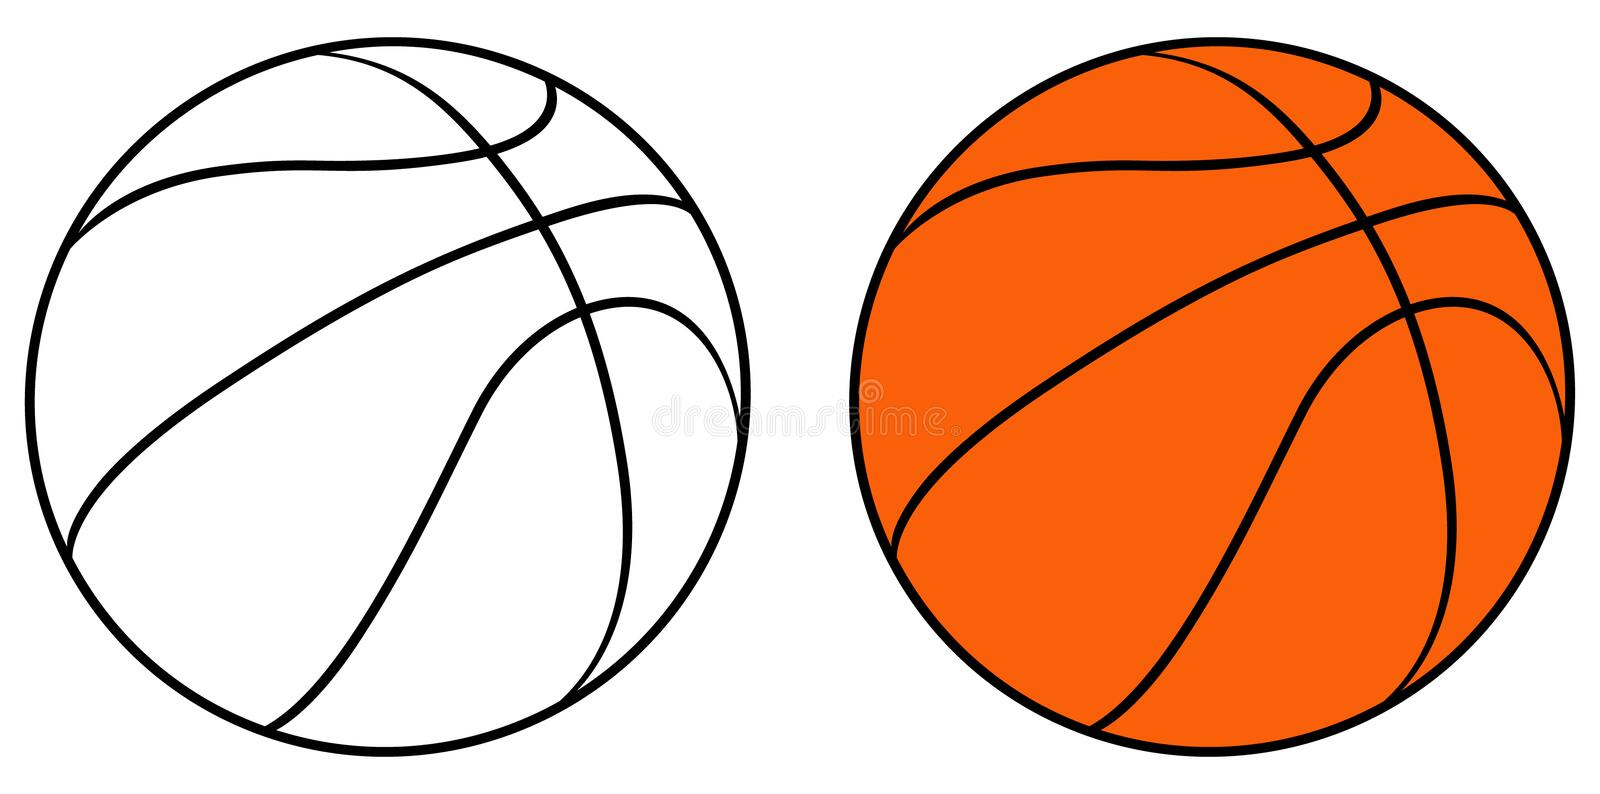 Basket-ball illustration libre de droits